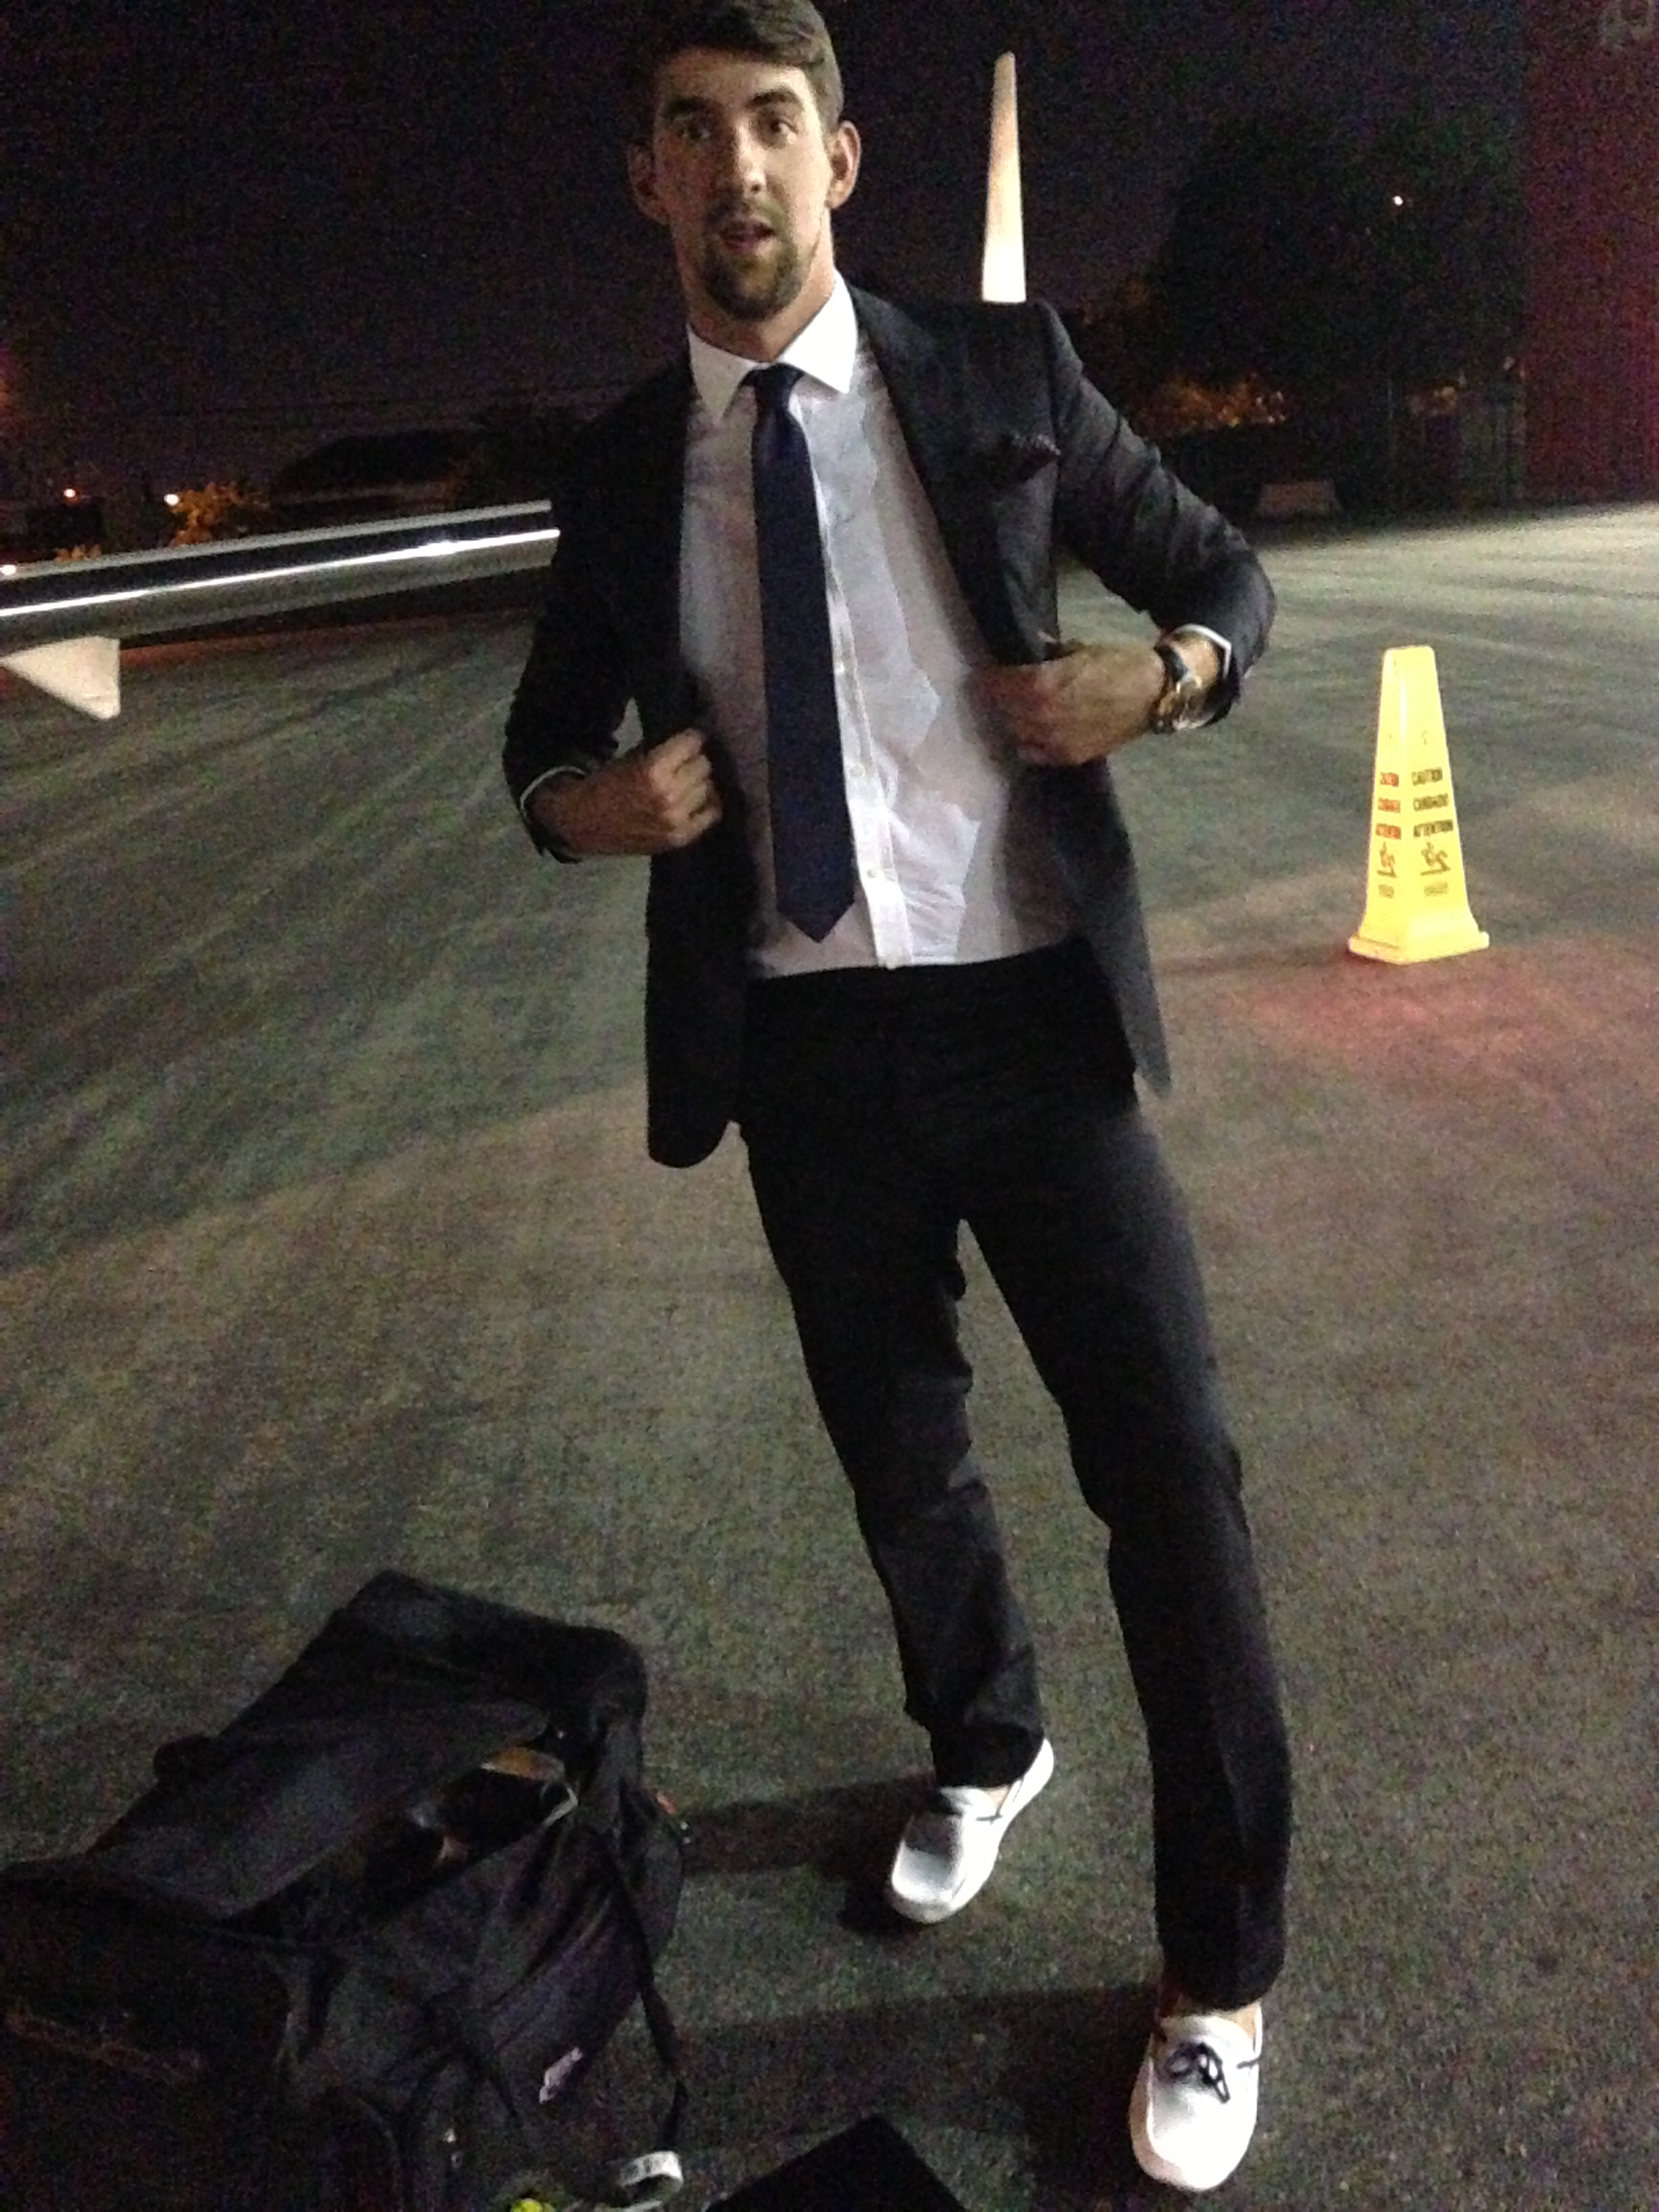 Michael-phelps-SWIMS-lace-loafers-2